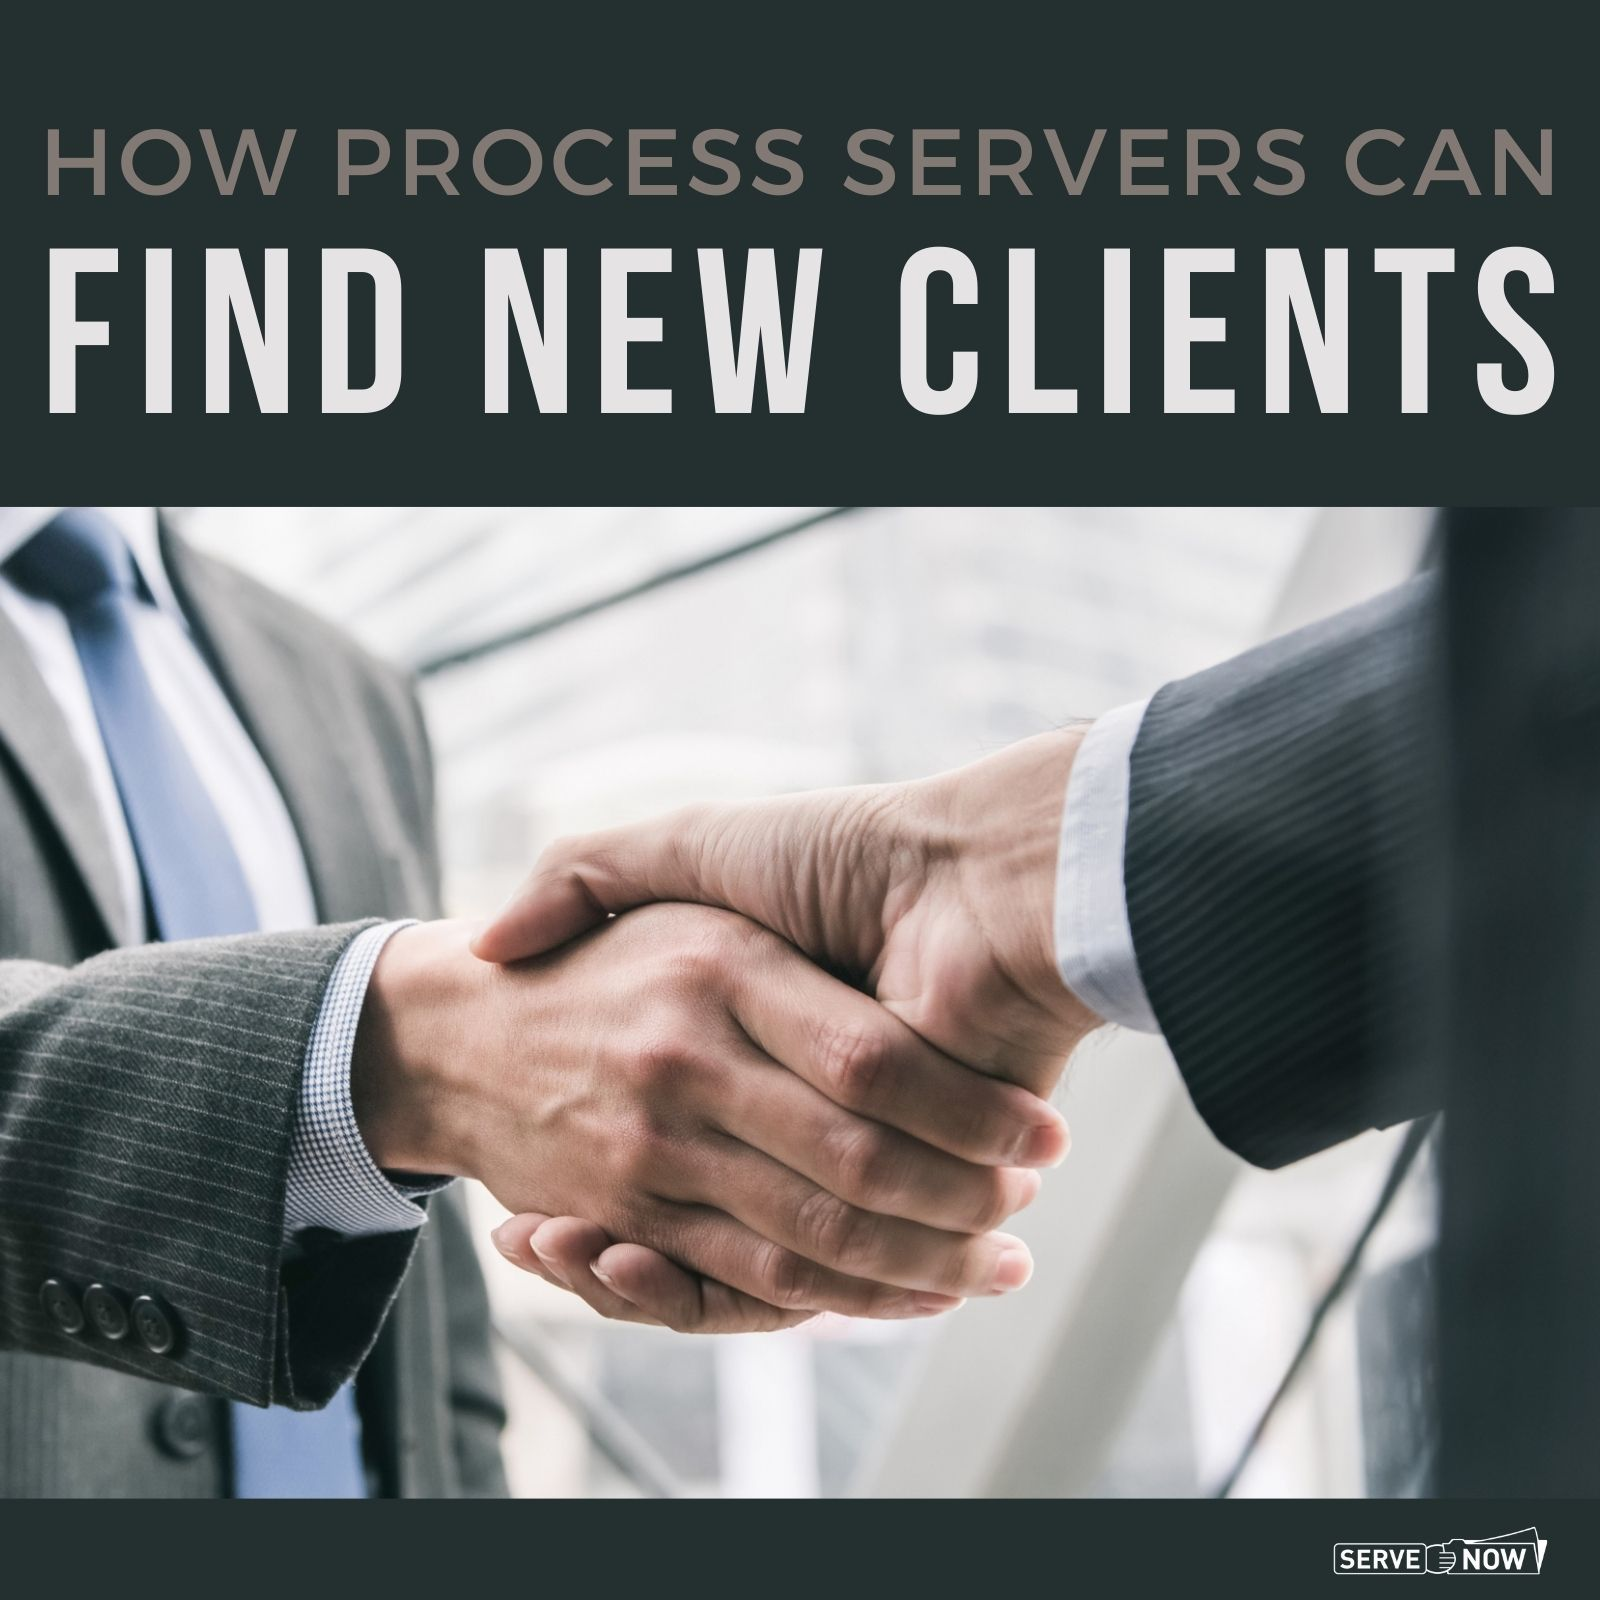 How Process Servers Can Find New Clients